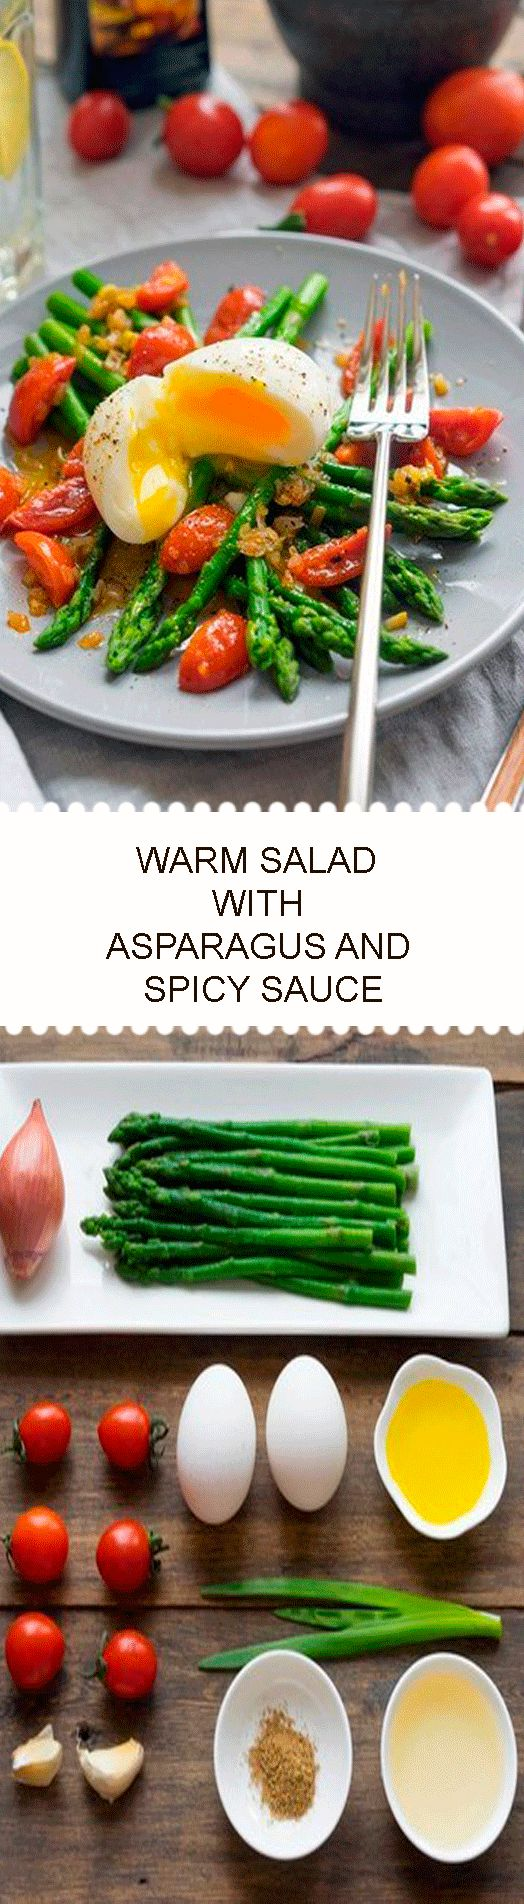 WARM SALAD WITH ASPARAGUS AND SPICY SAUCE